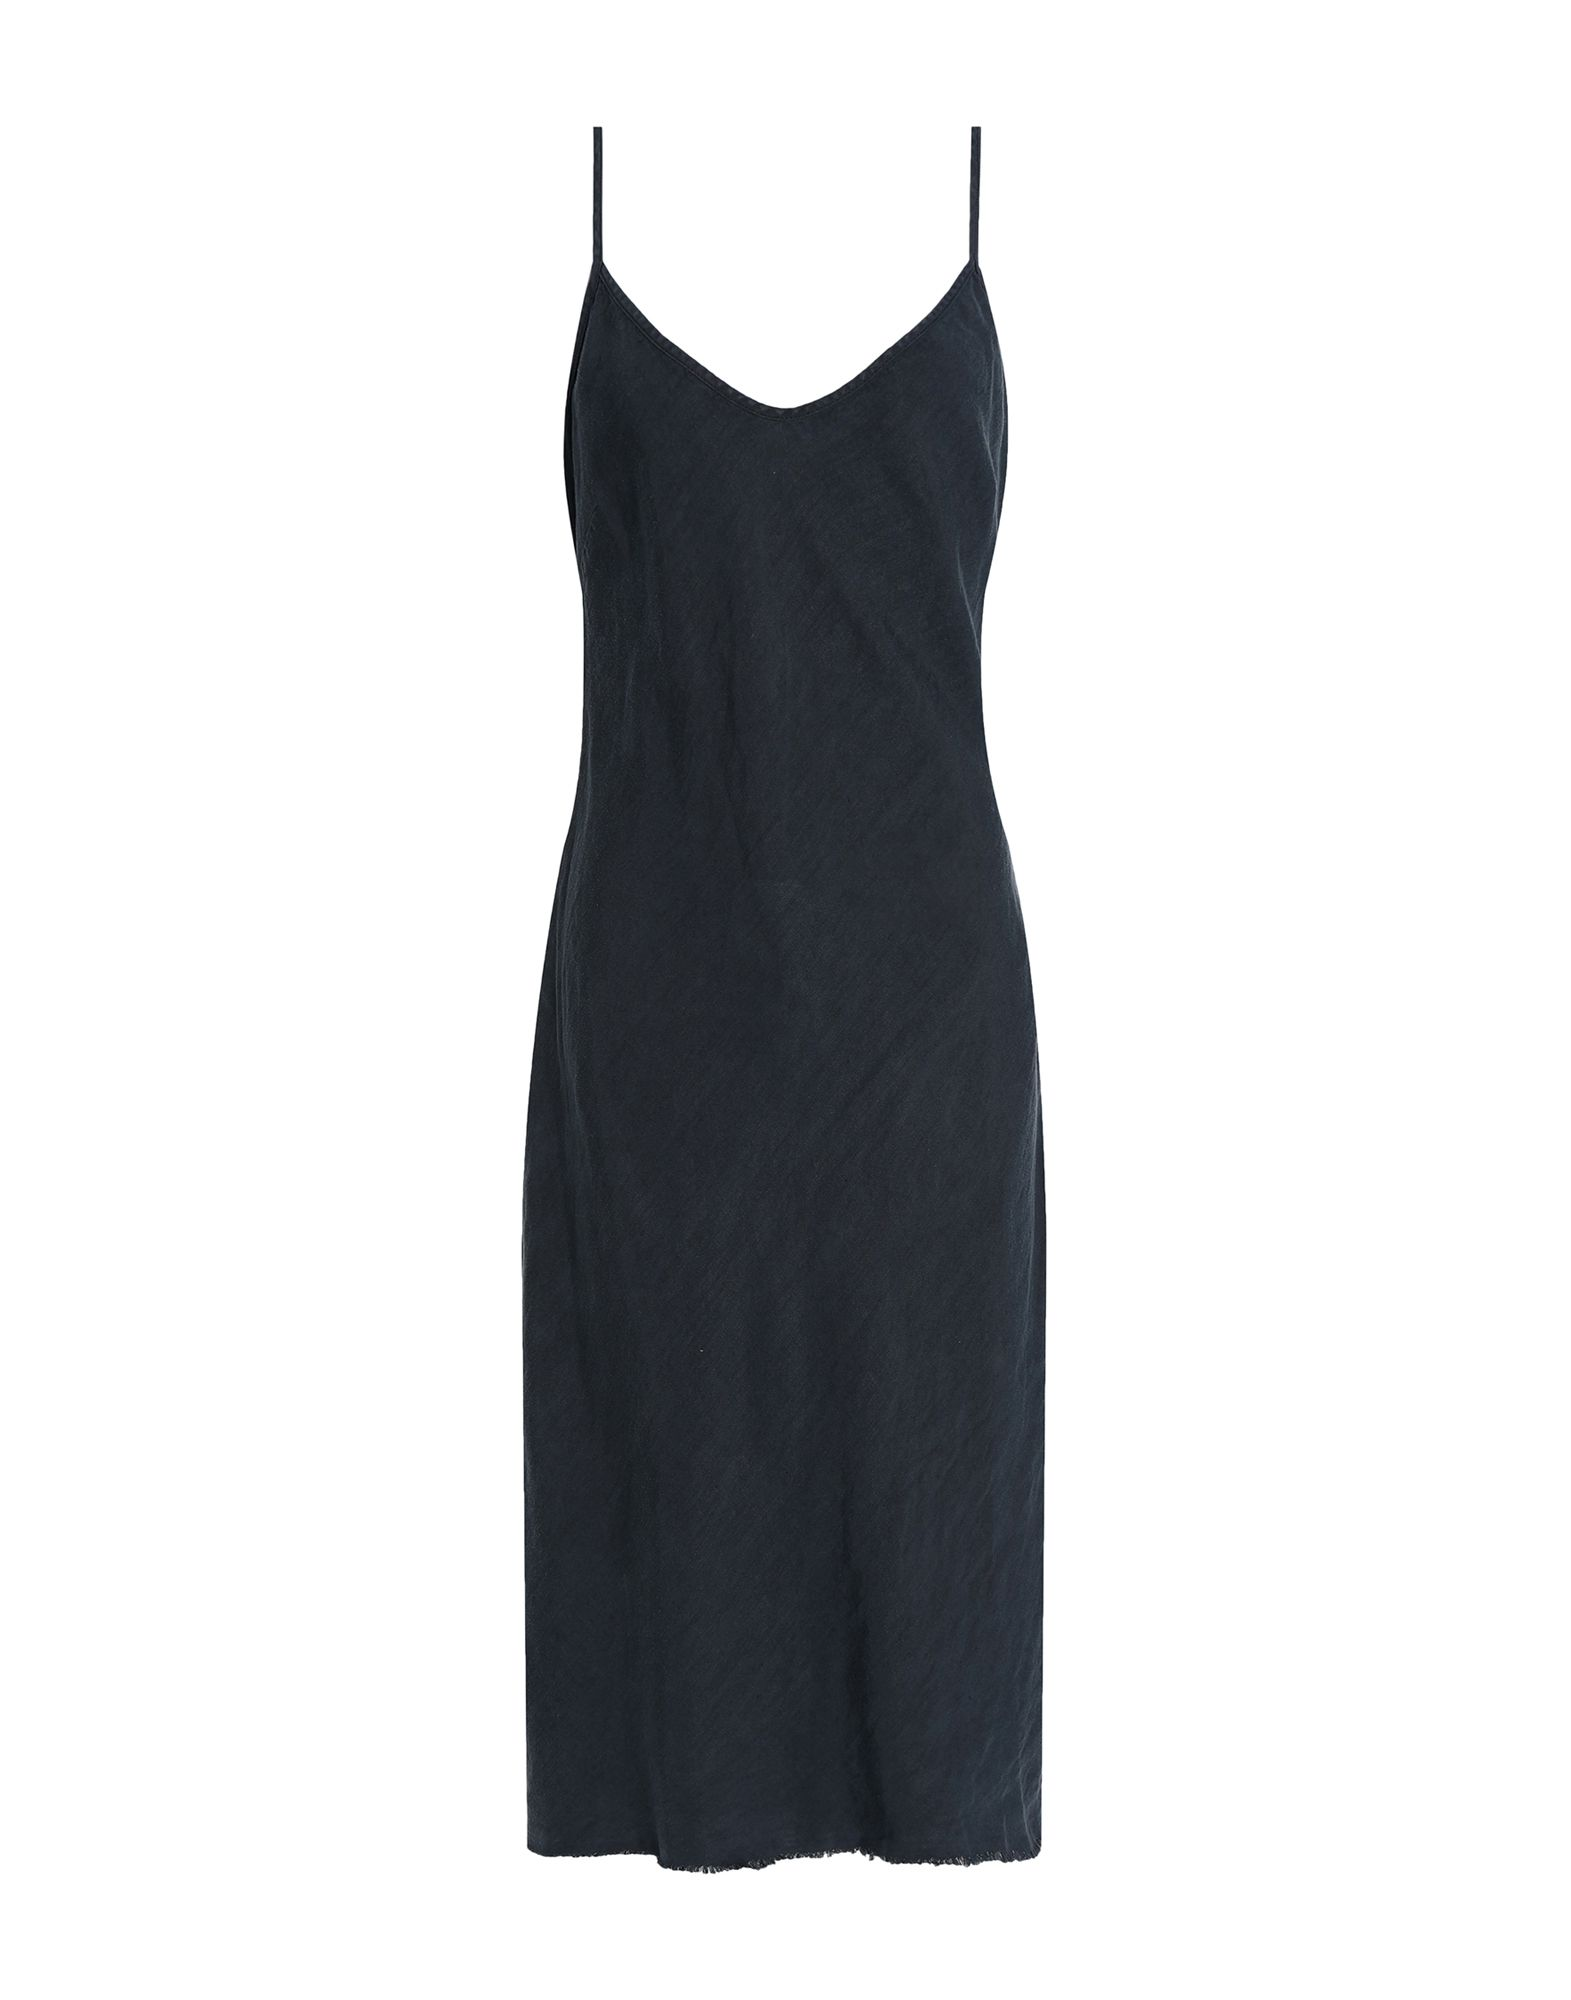 MOTHER | MOTHER Knee-Length Dresses 34959462 | Goxip